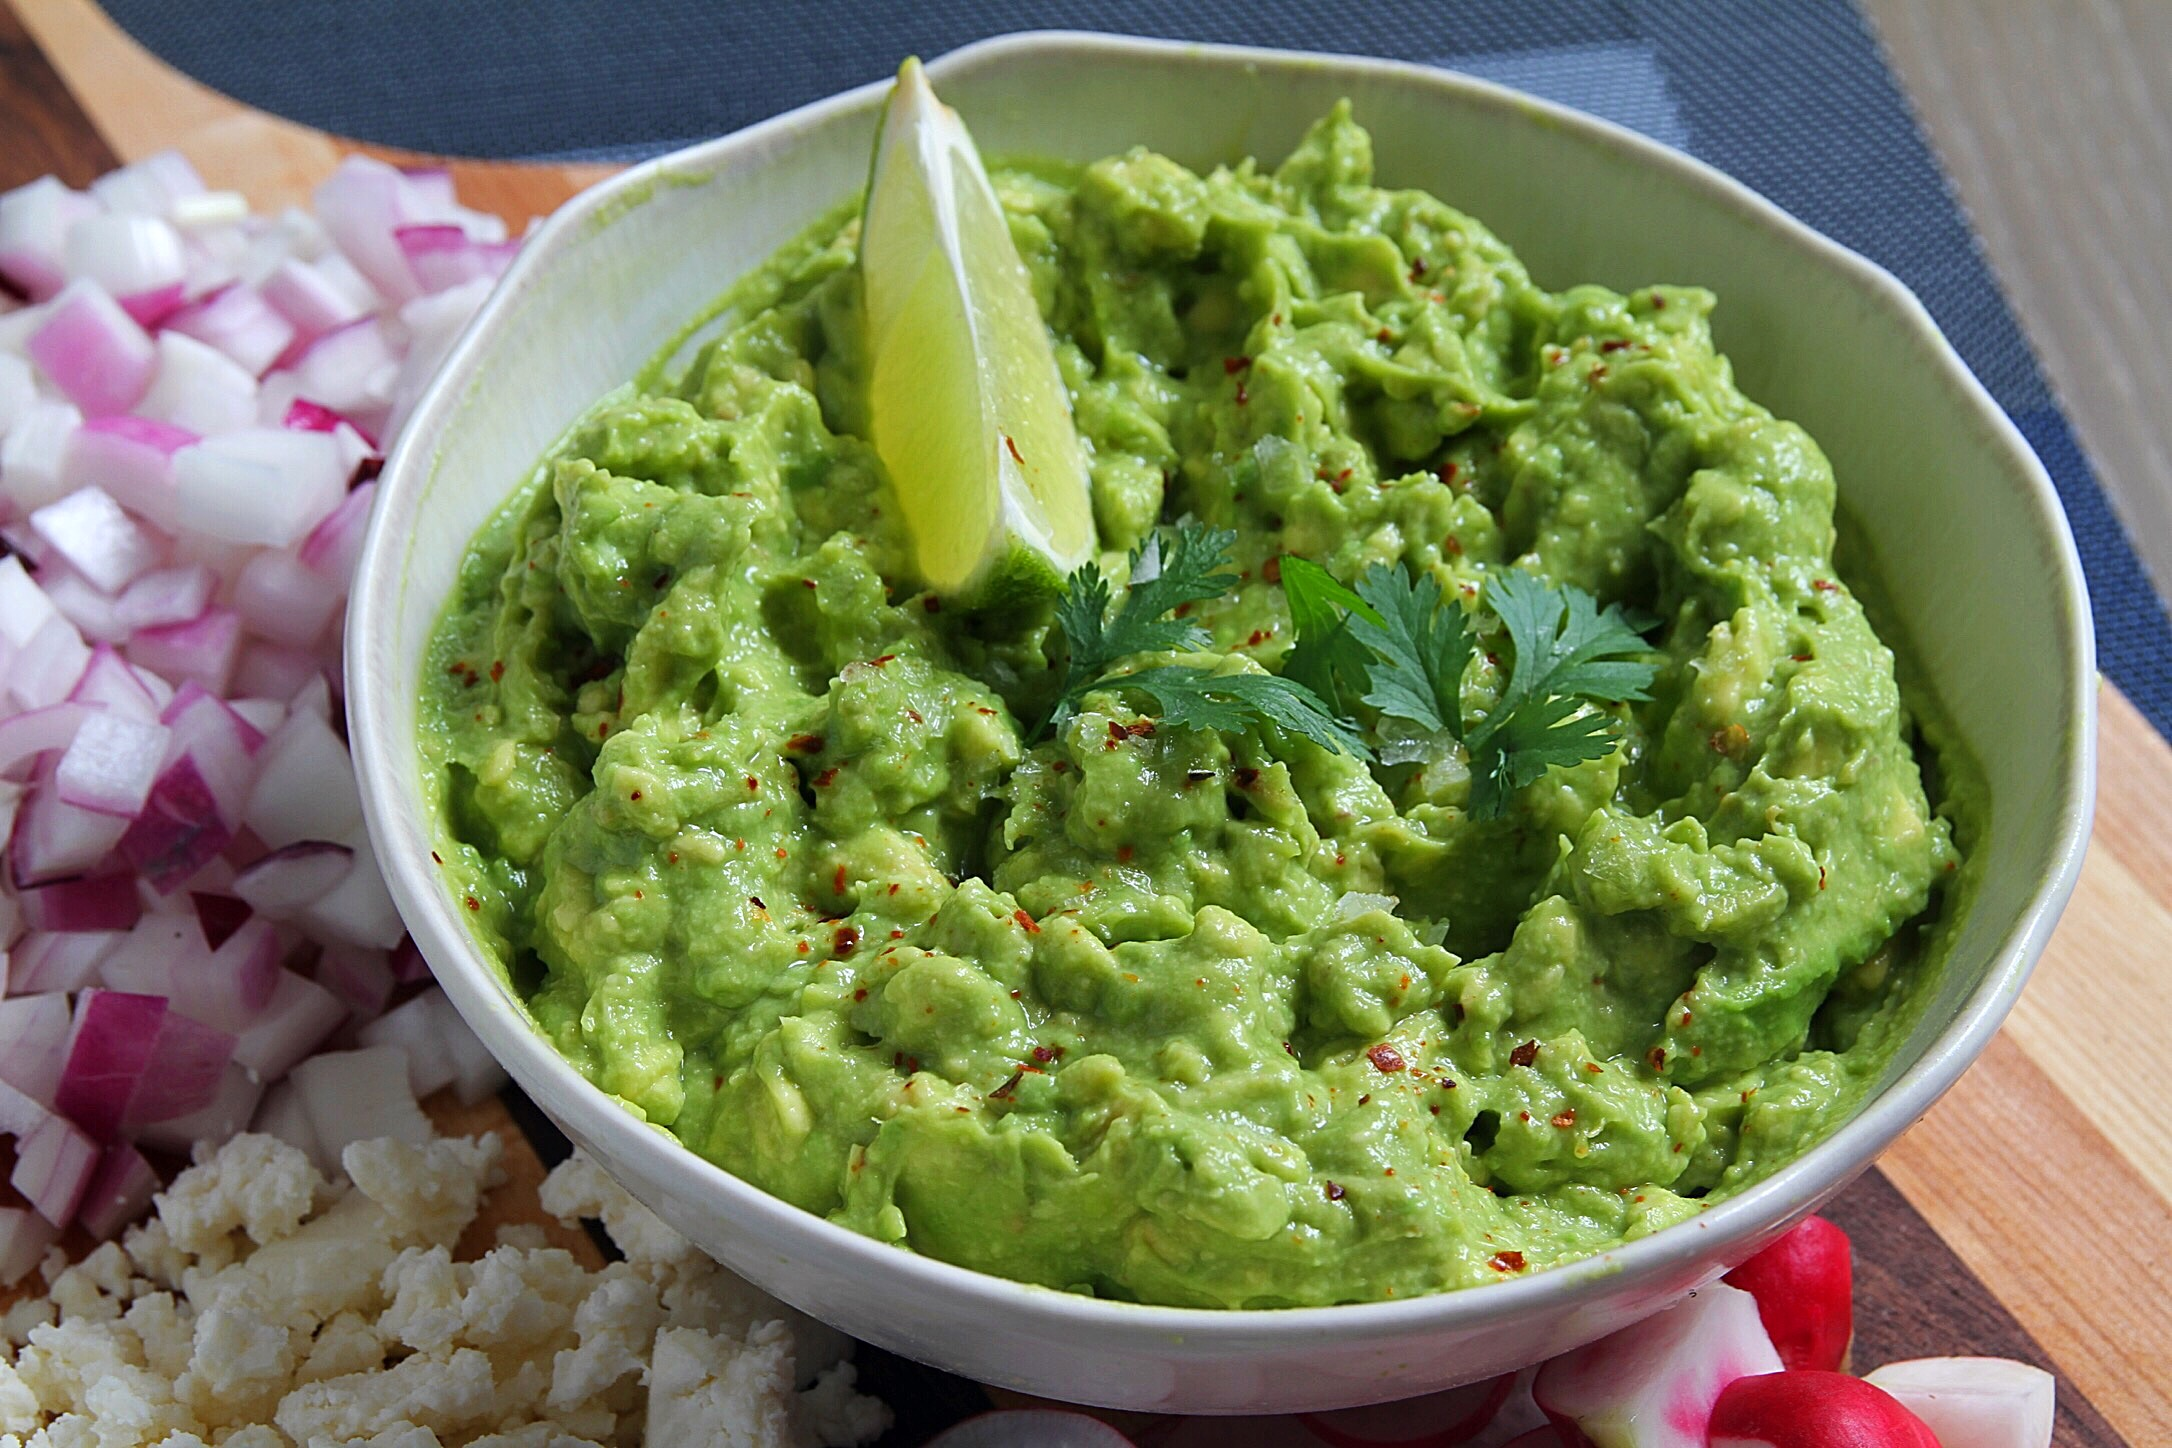 Not a recent guacamole photo, but we did enjoy some homemade guac while making the eggplant!